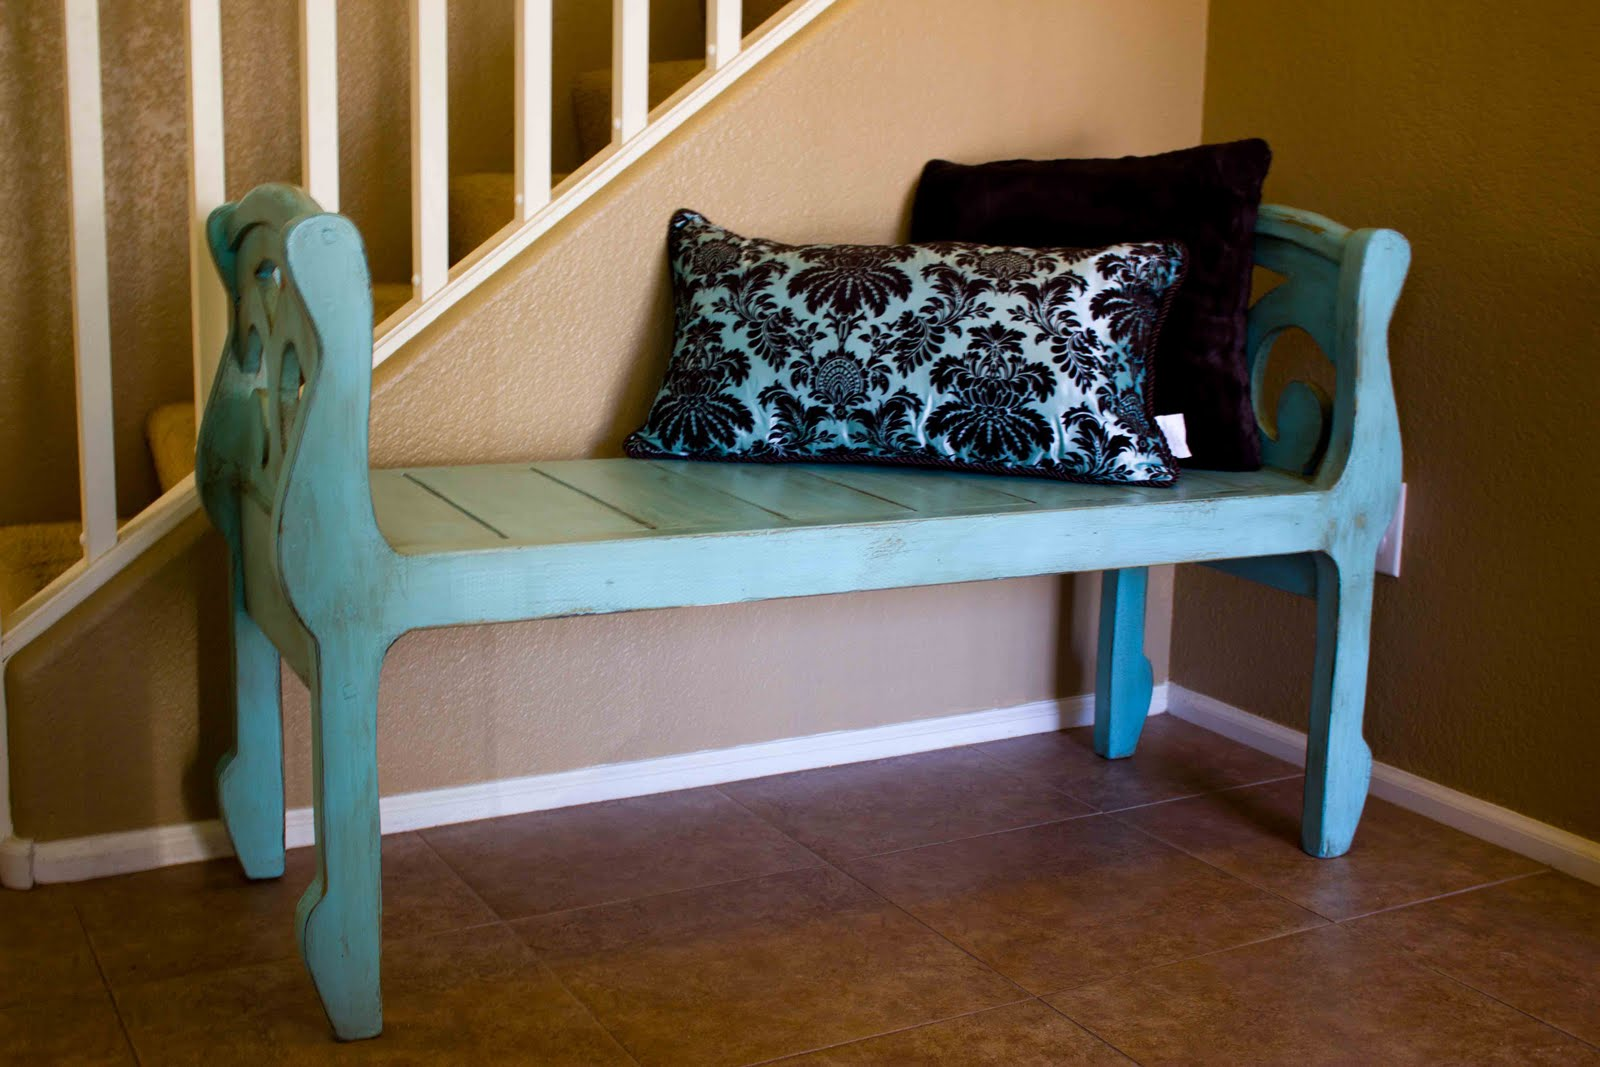 Bench By Bed: New To You: Entryway Or End Of Bed Bench